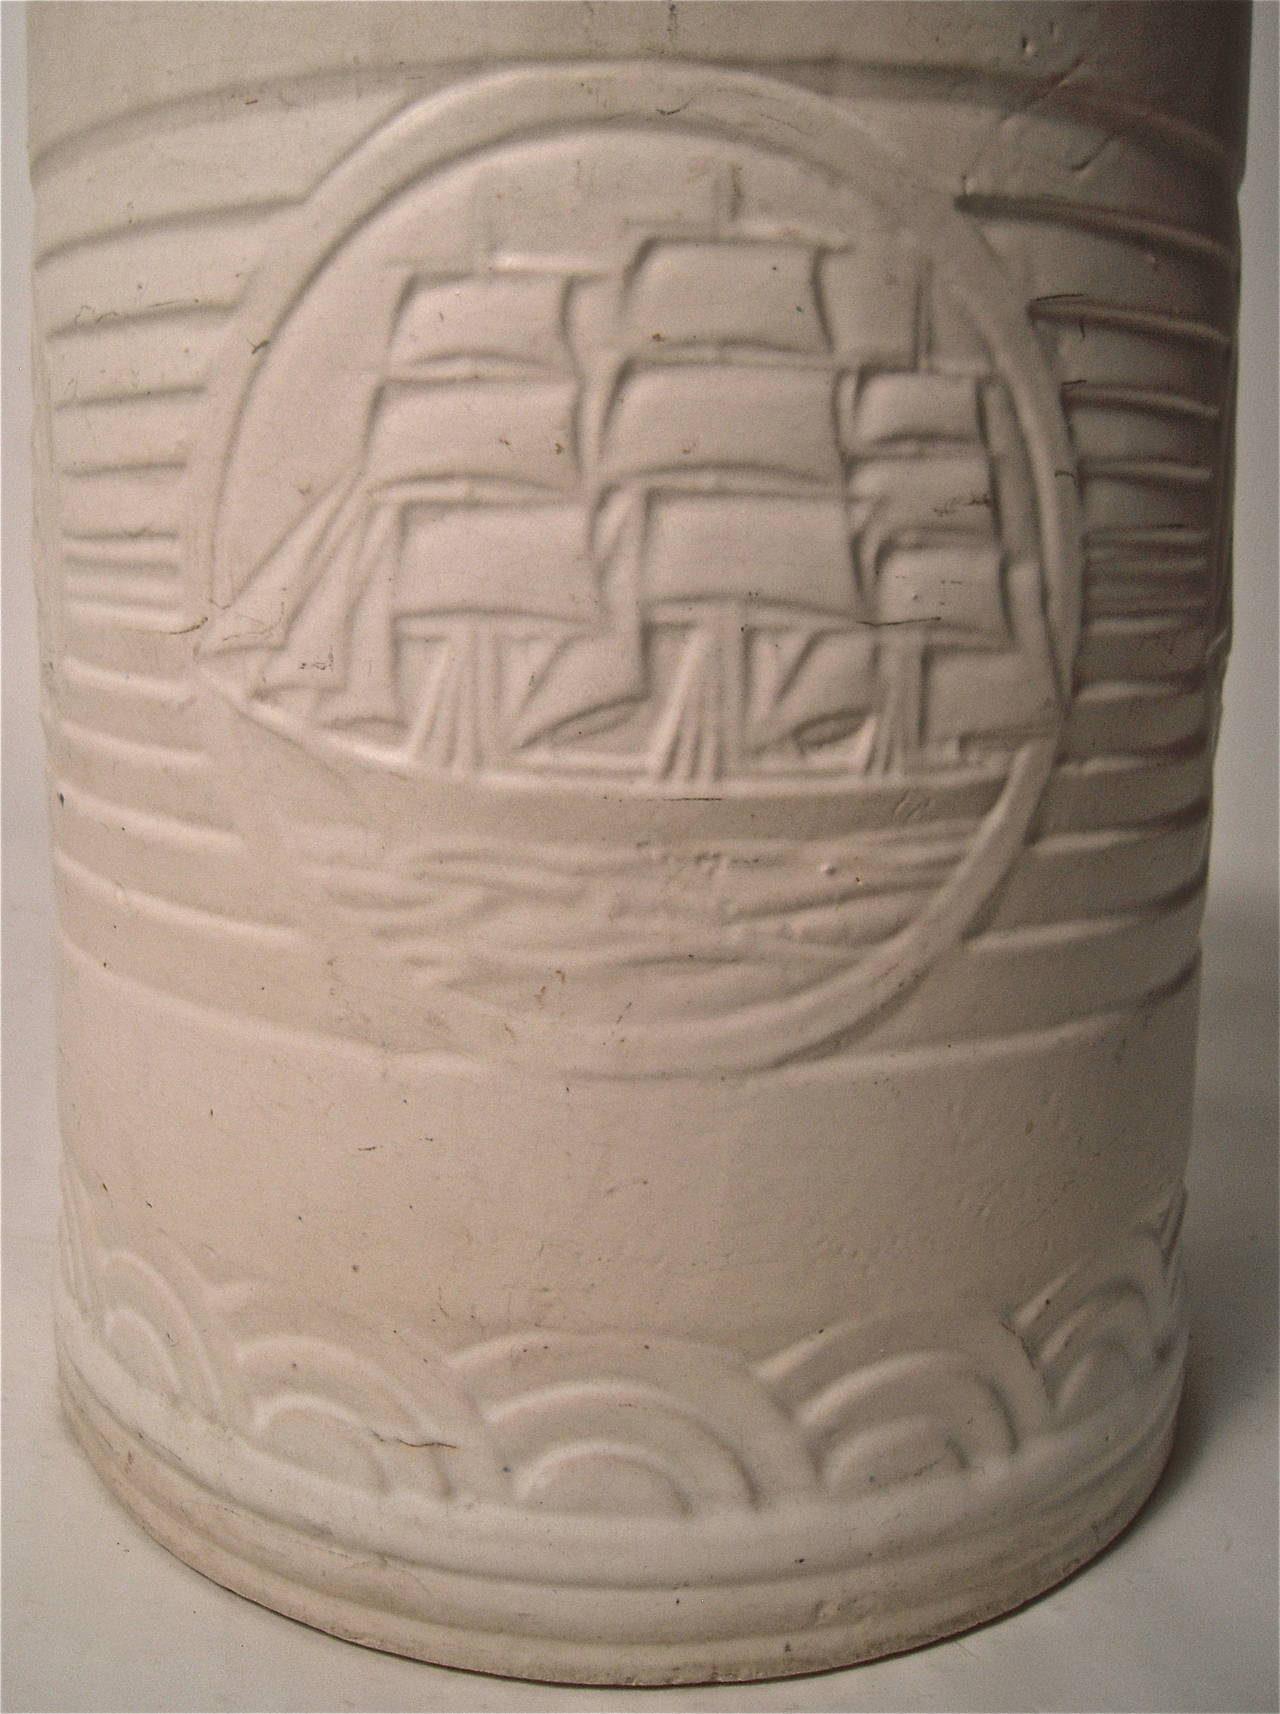 Nautical Art Deco Pottery Waste Basket Or Planter At 1stdibs